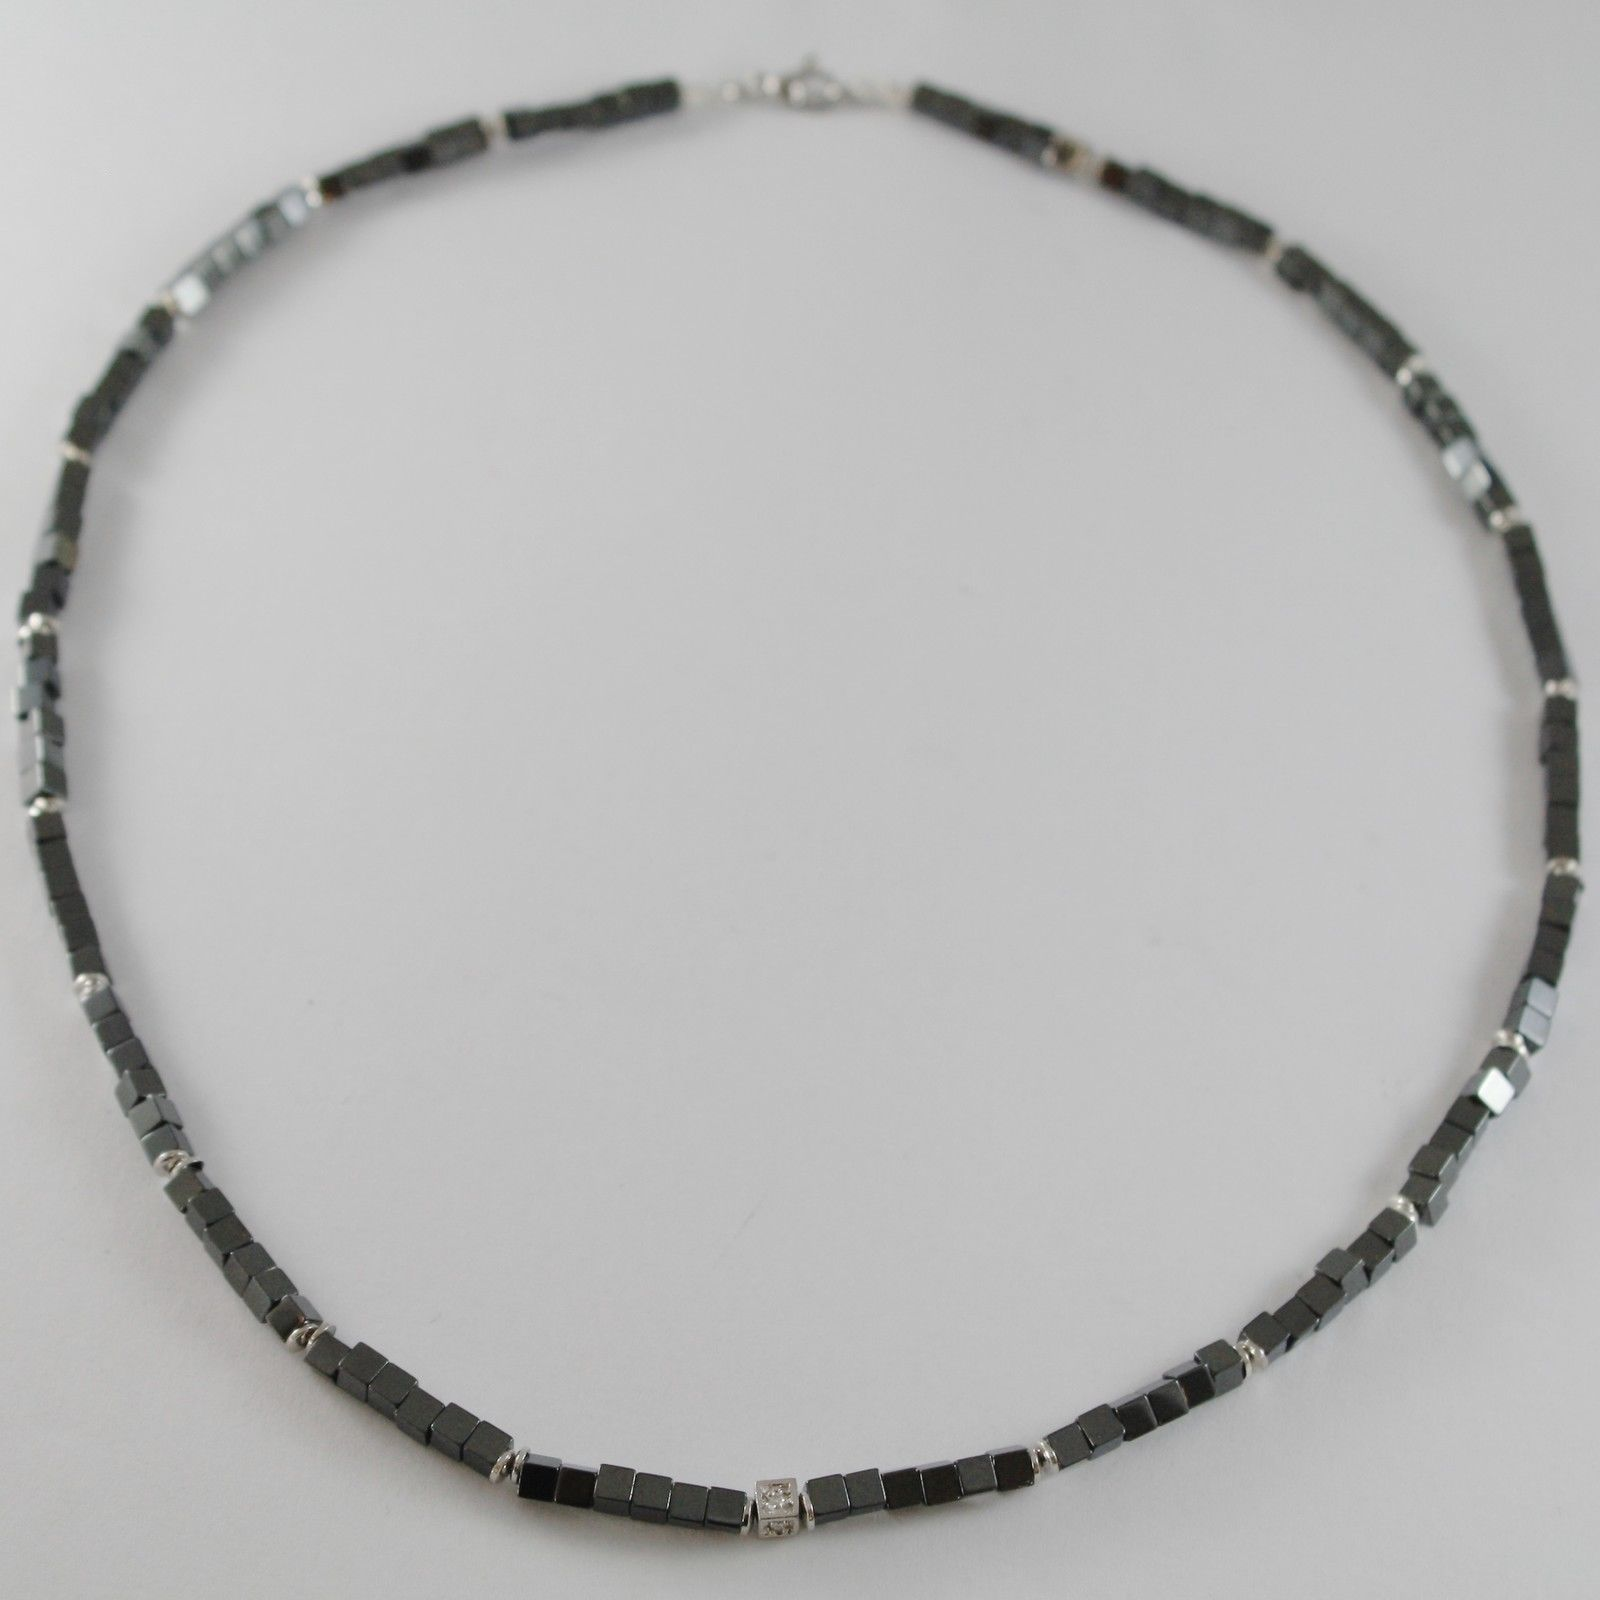 NECKLACE GIADAN 925 SILVER HEMATITE LUCIDA AND 8 DIAMONDS WHITE MADE IN ITALY